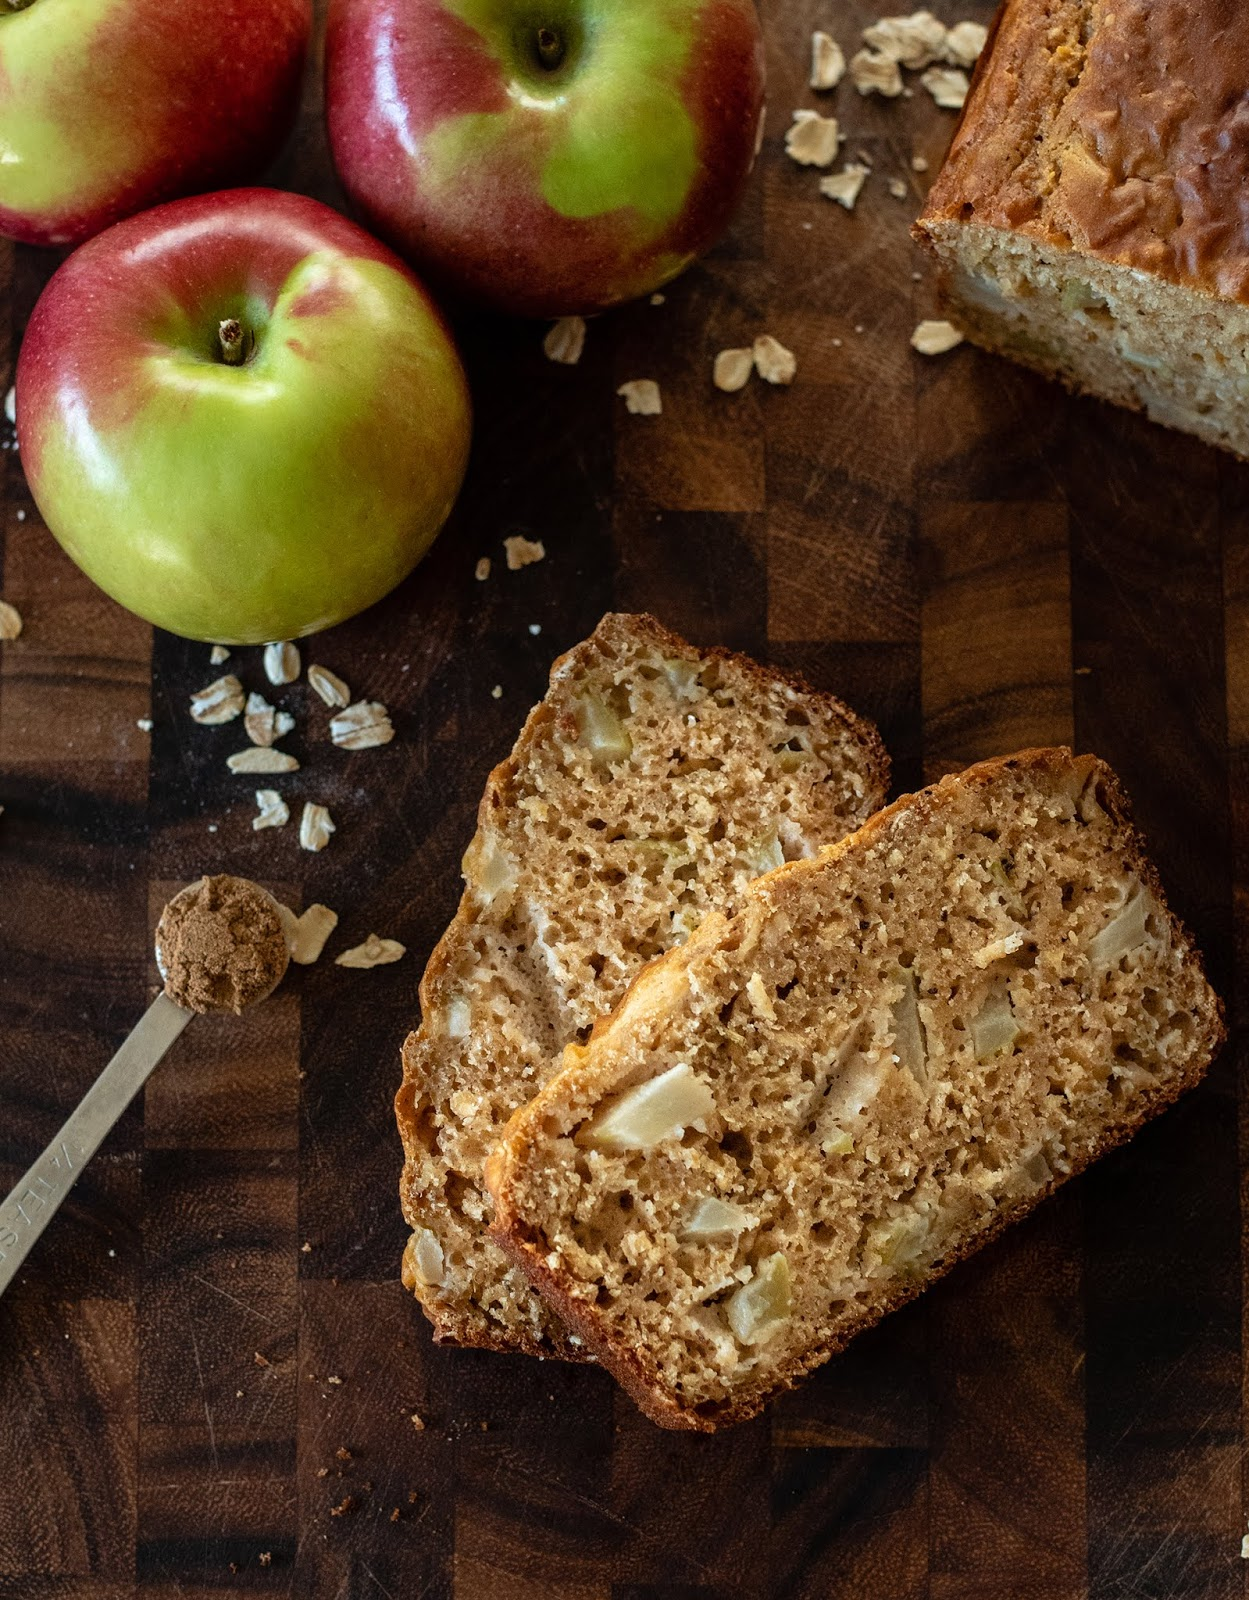 Local Food Rocks: Apple Pie Spice Breakfast Bread Slices